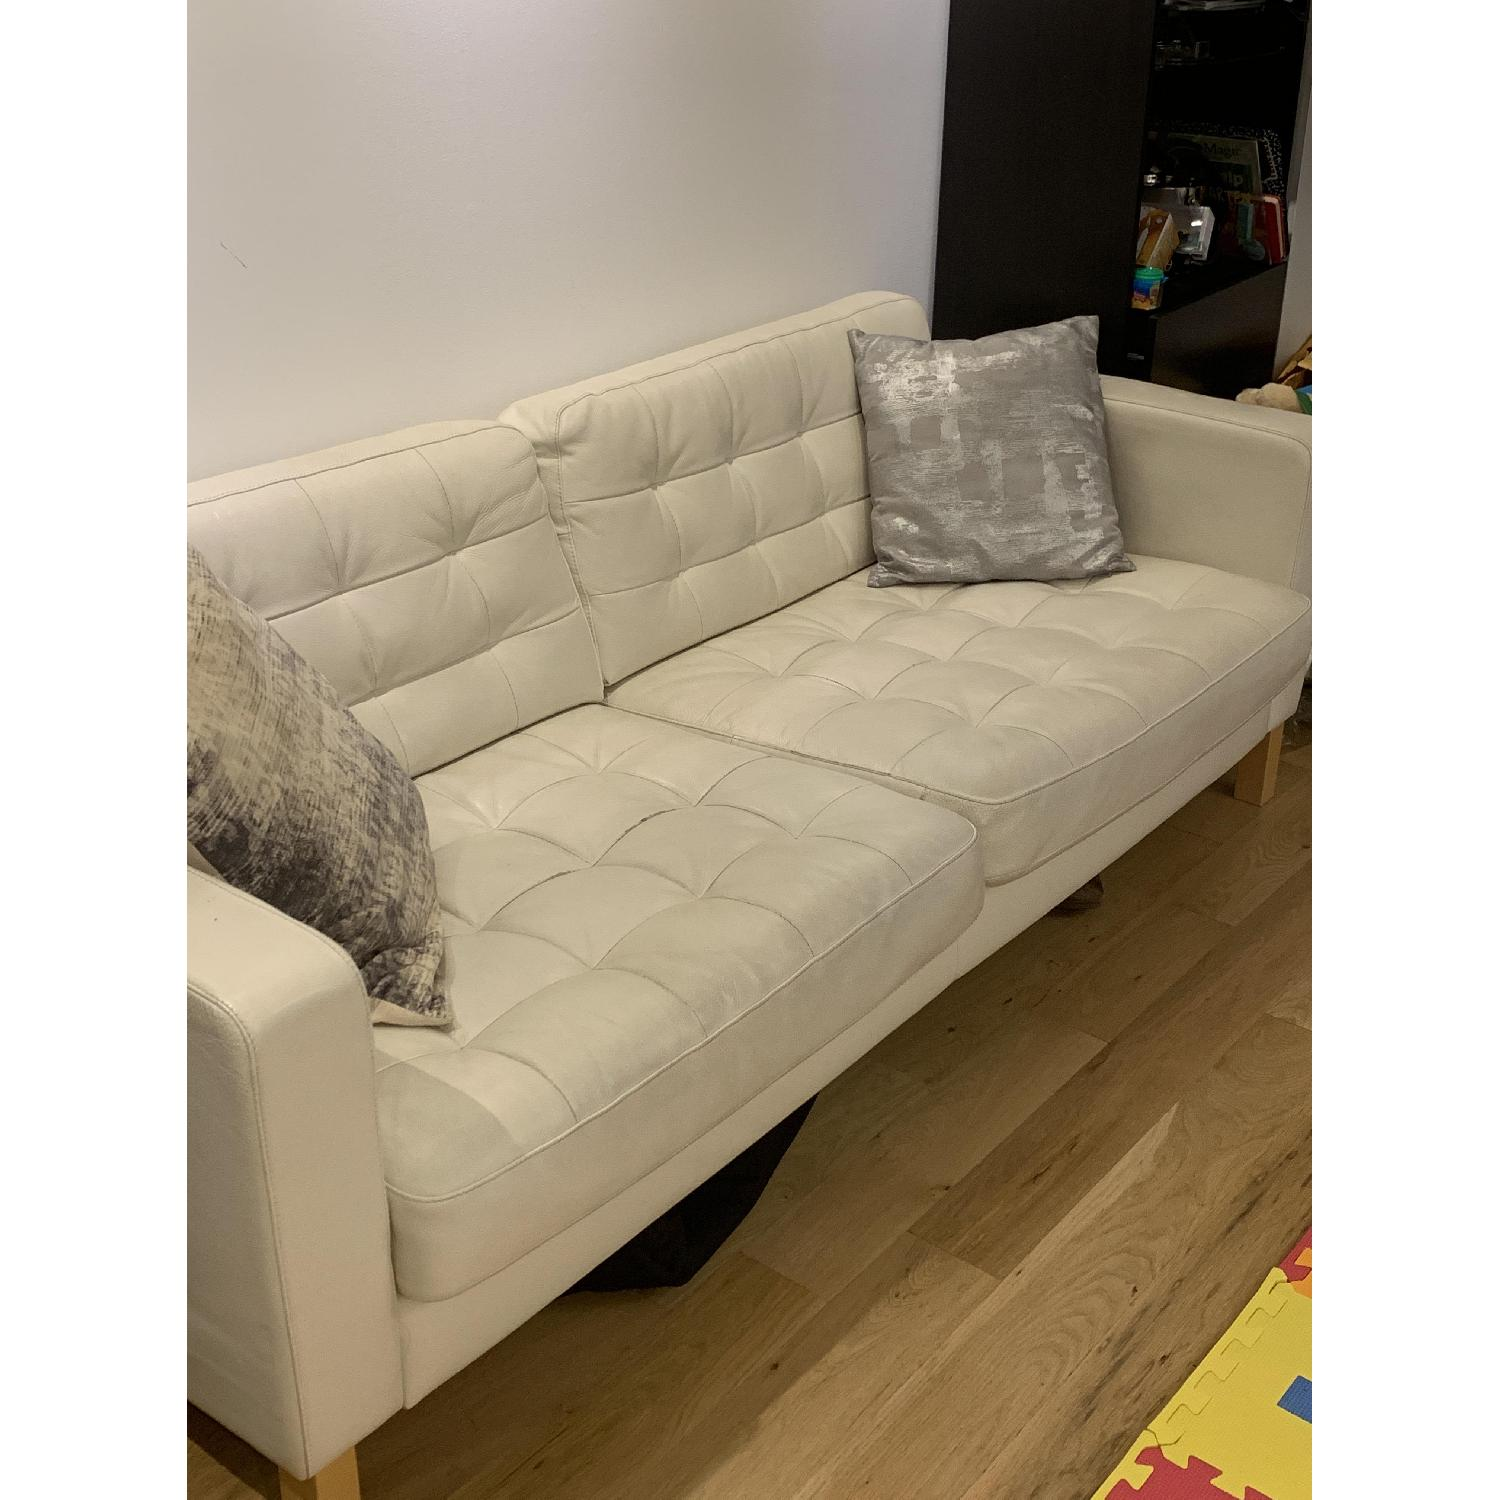 Fantastic Ikea Landskrona White Leather Sofa Aptdeco Creativecarmelina Interior Chair Design Creativecarmelinacom